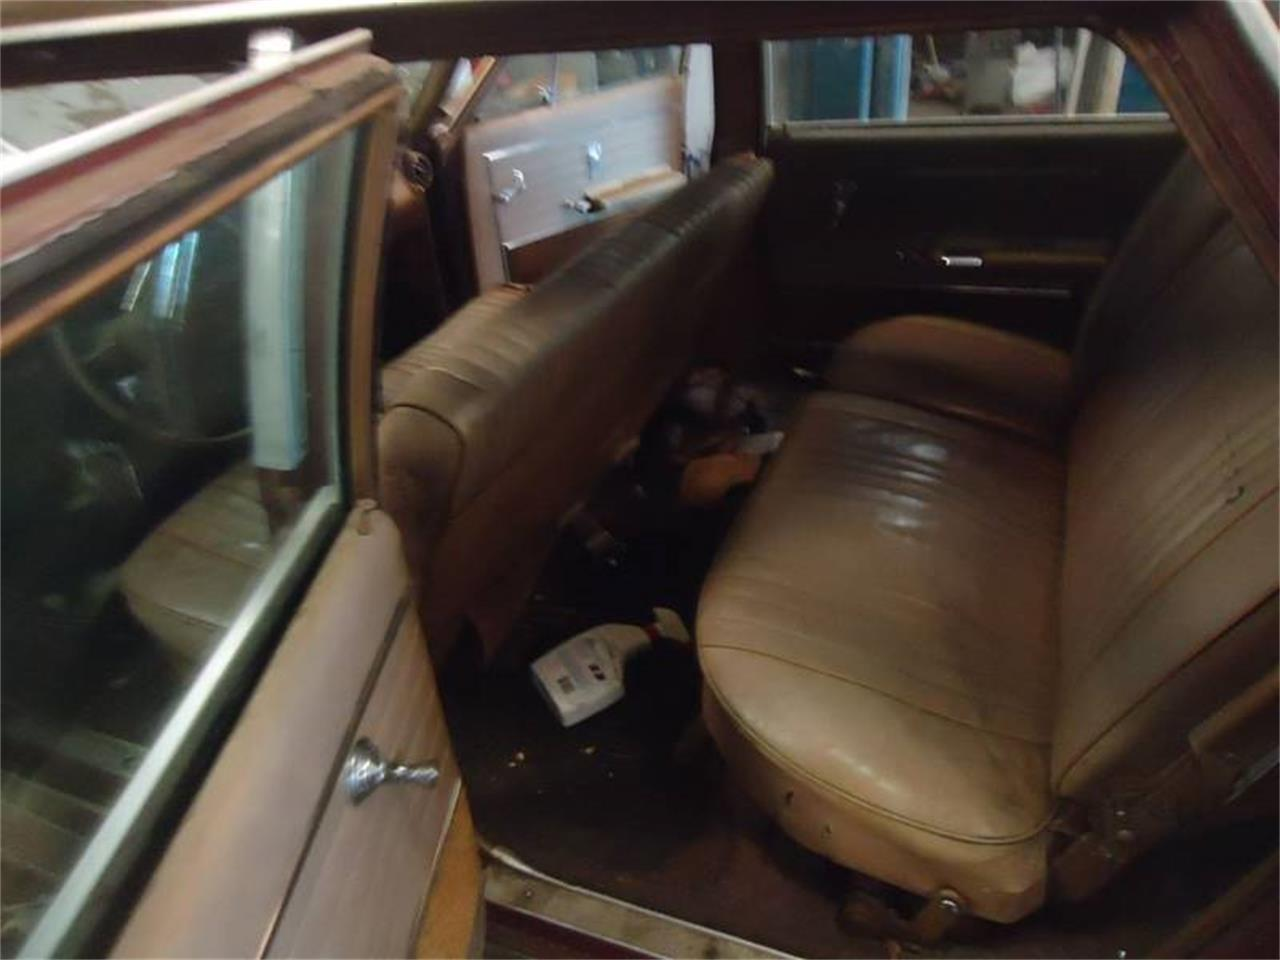 1965 sport wagon glass roof buick for sale in Jackson, MI – photo 3